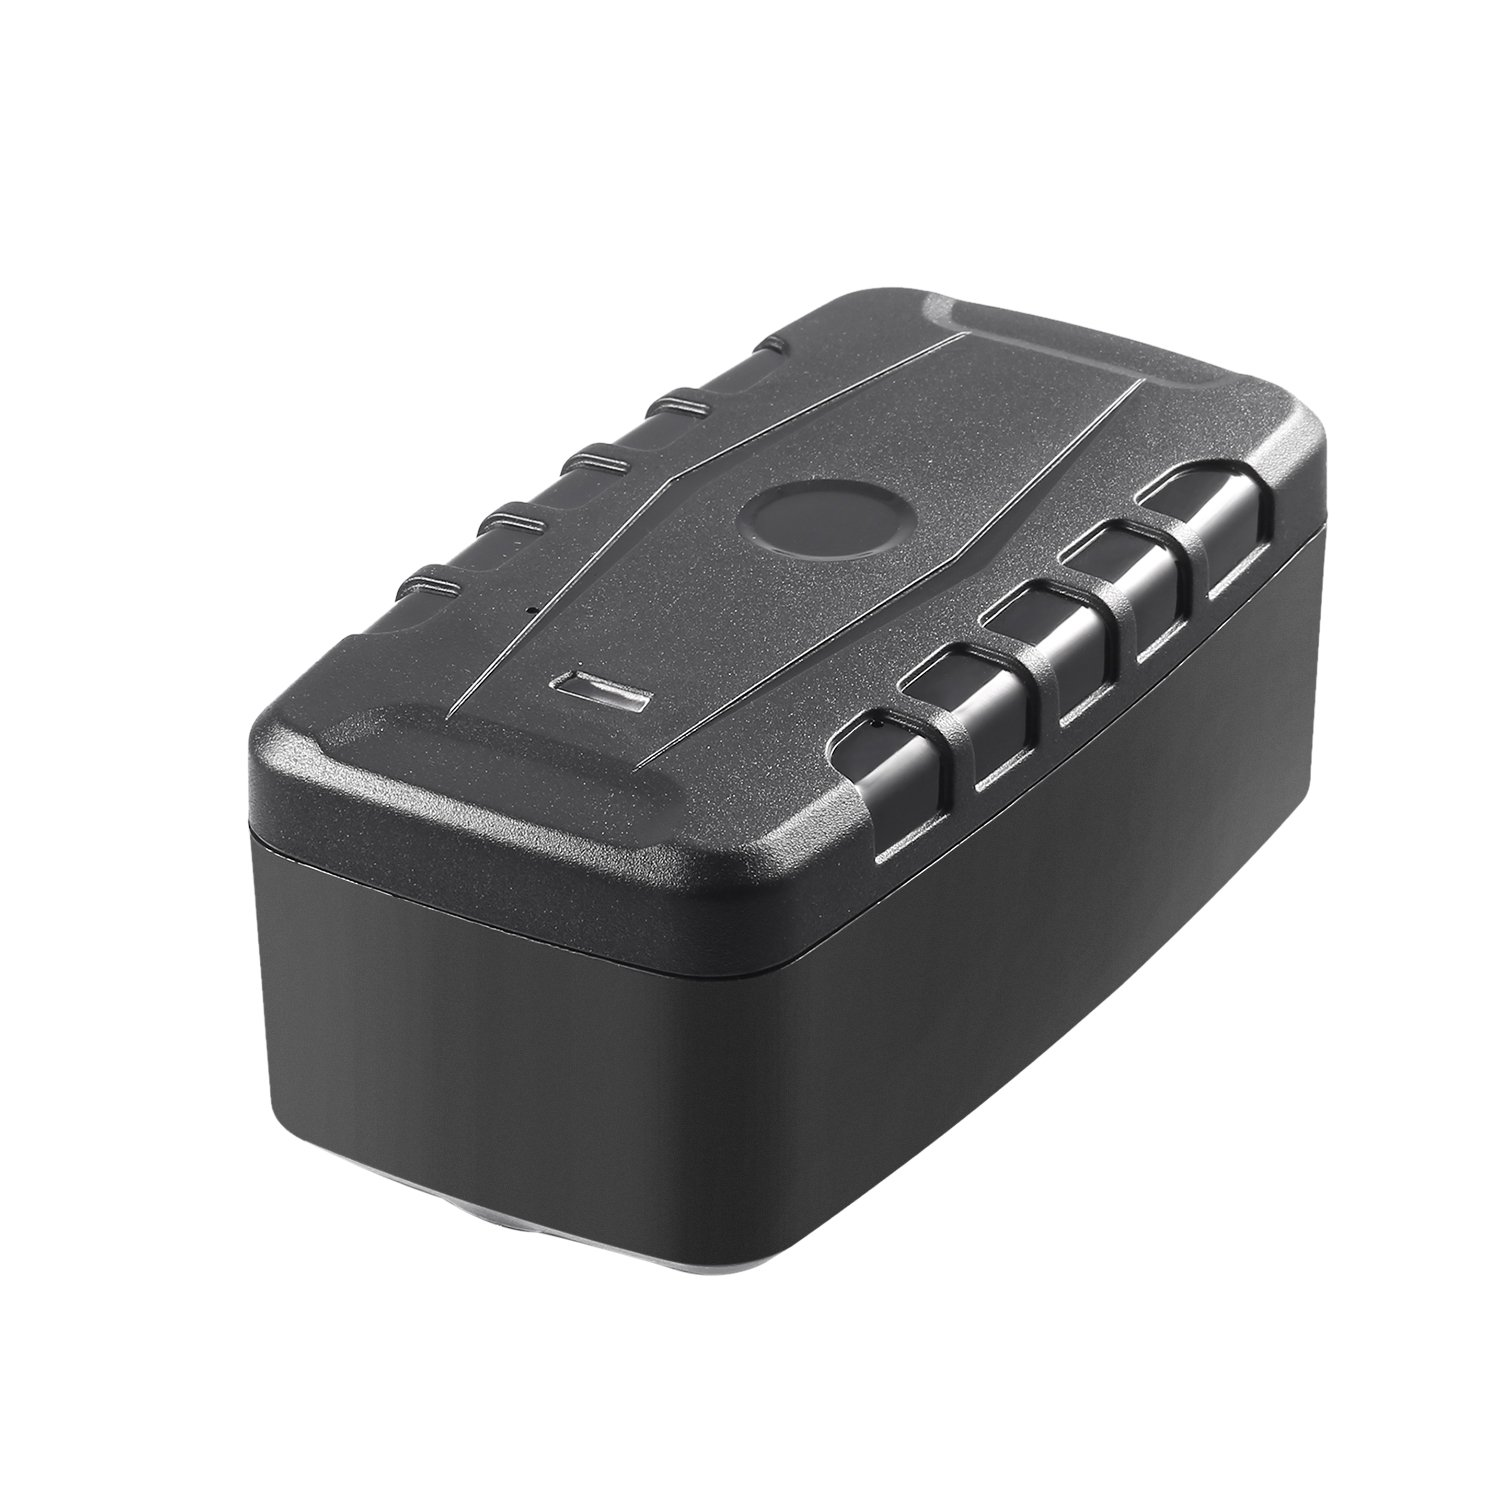 Car GPS Tracker,LESHP for vehical Locator Powerful Magnet Free Installation Free Fee Lifetime Platform 20,000mAh Waterproof GPRS Tracking Standby Time 240 days for Vehicles Container Cargo Locator by LESHP